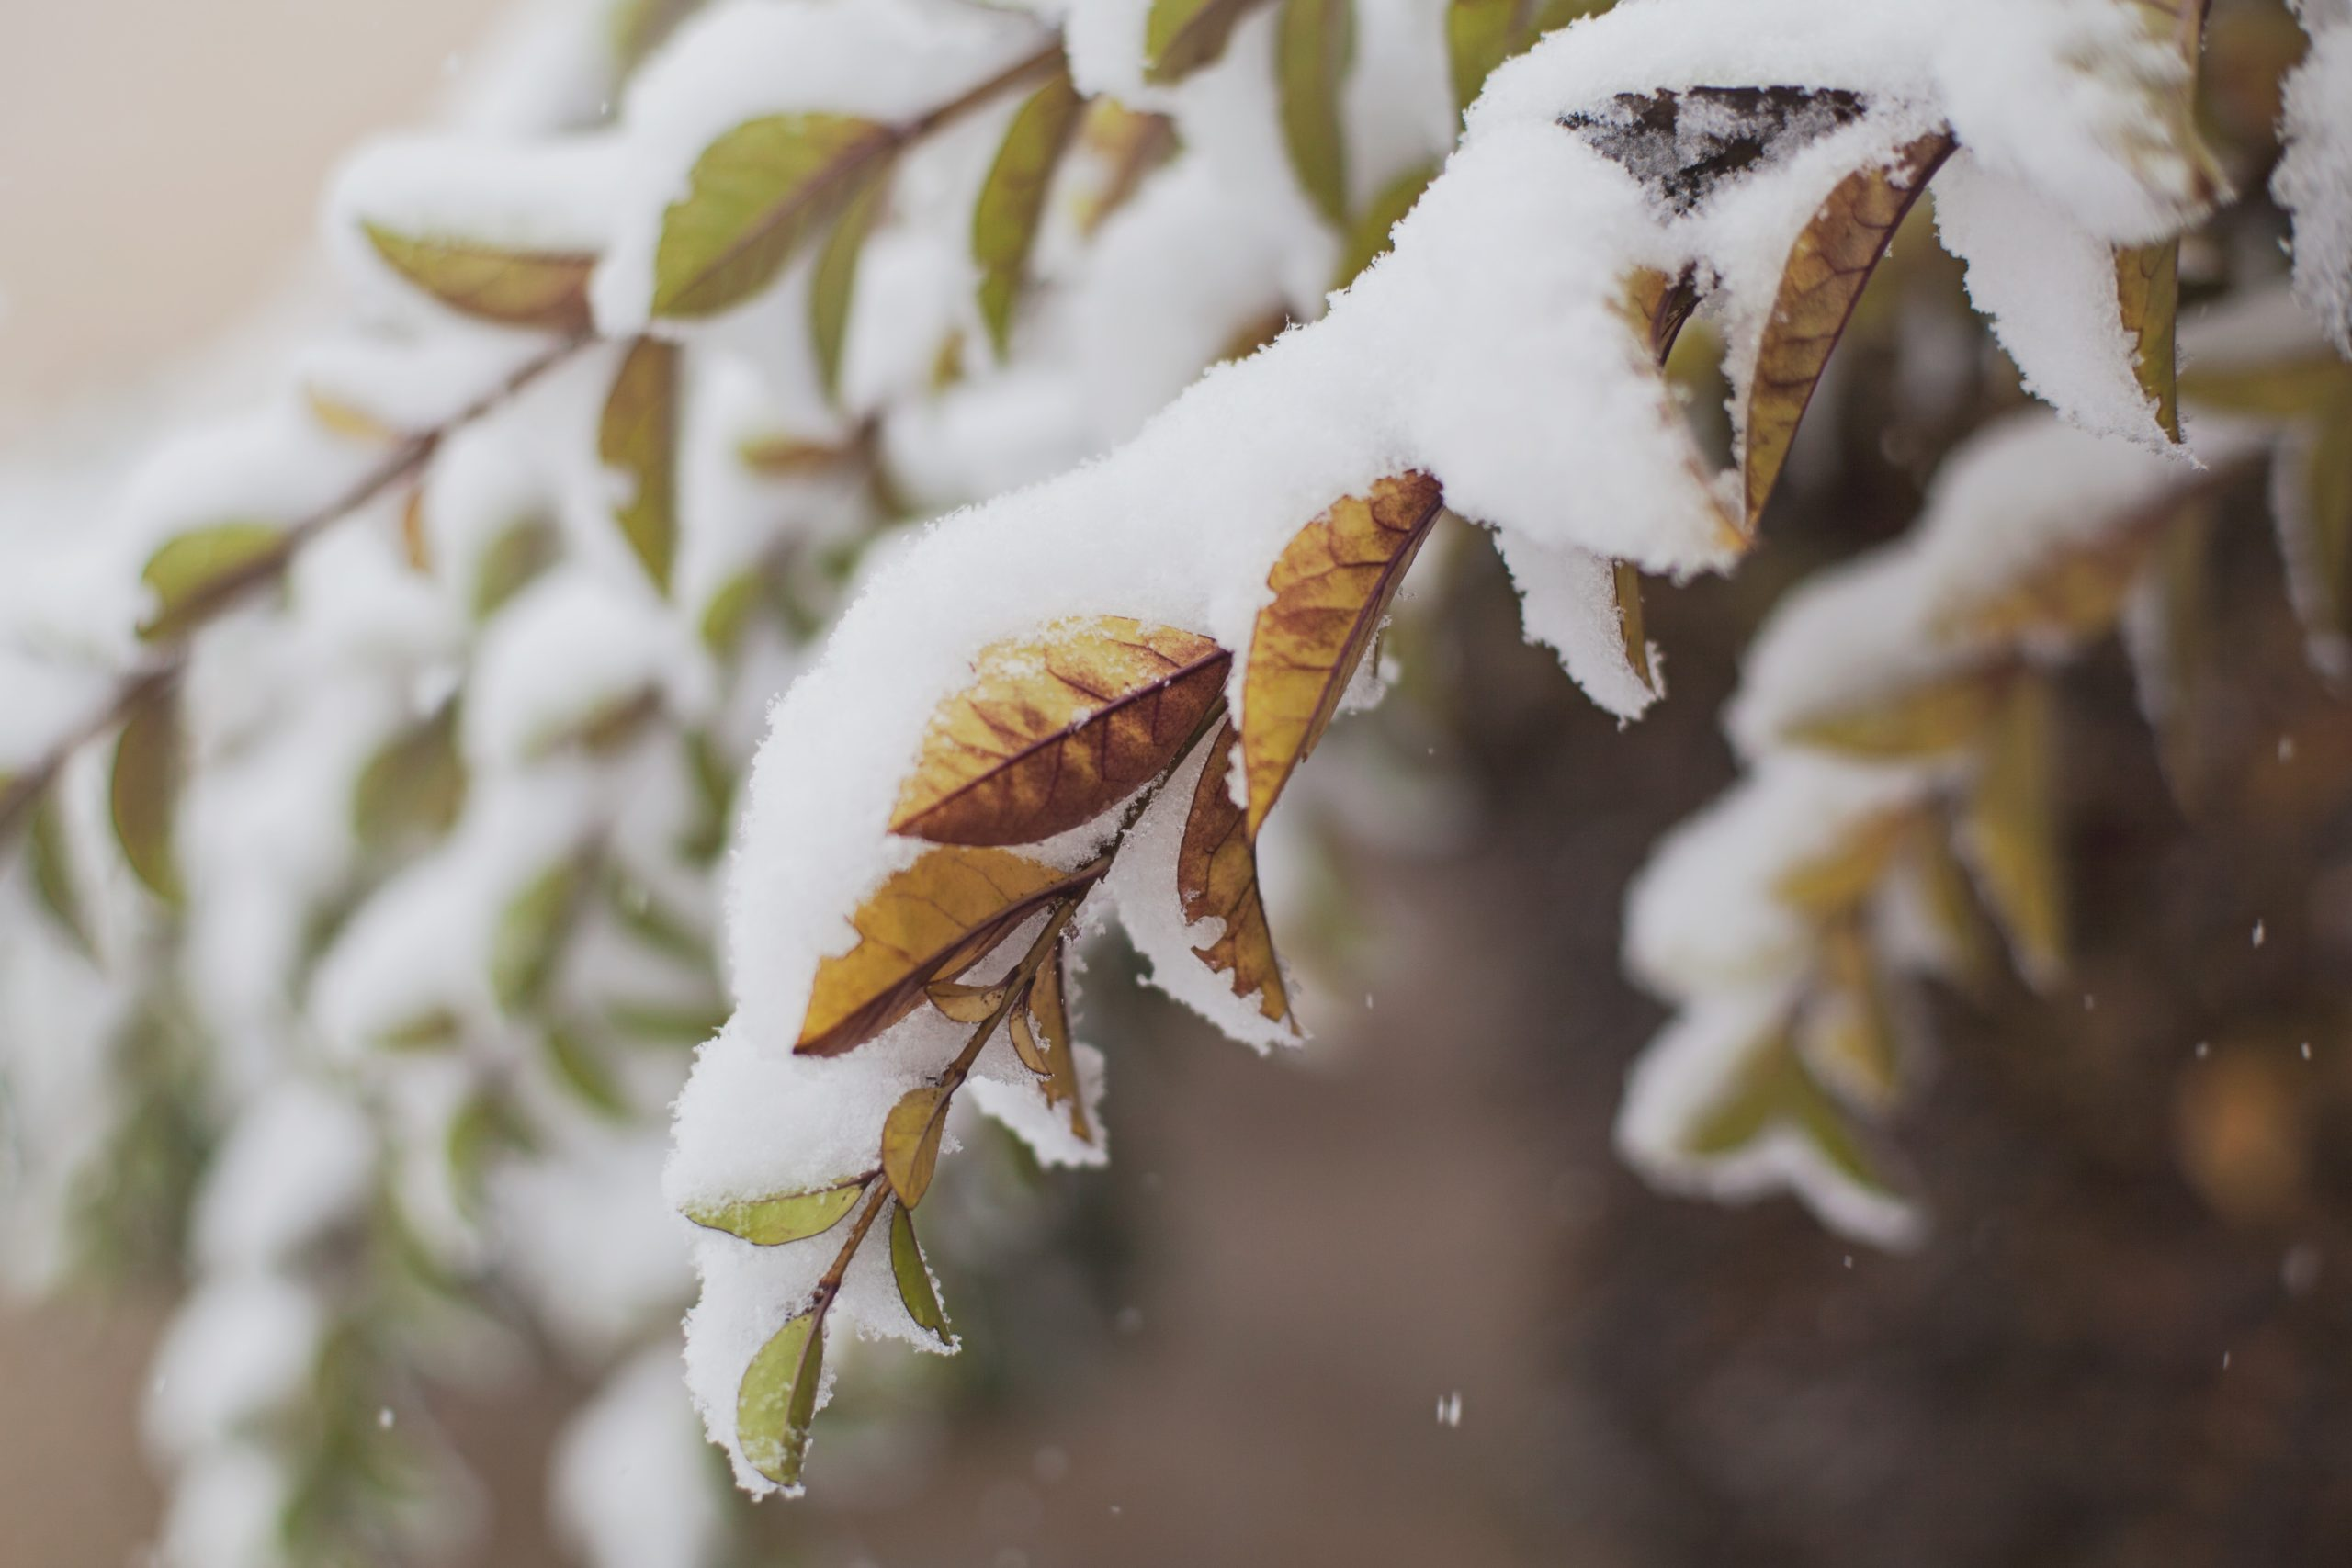 Photo of orange and green leaves on a branch laden with snow.